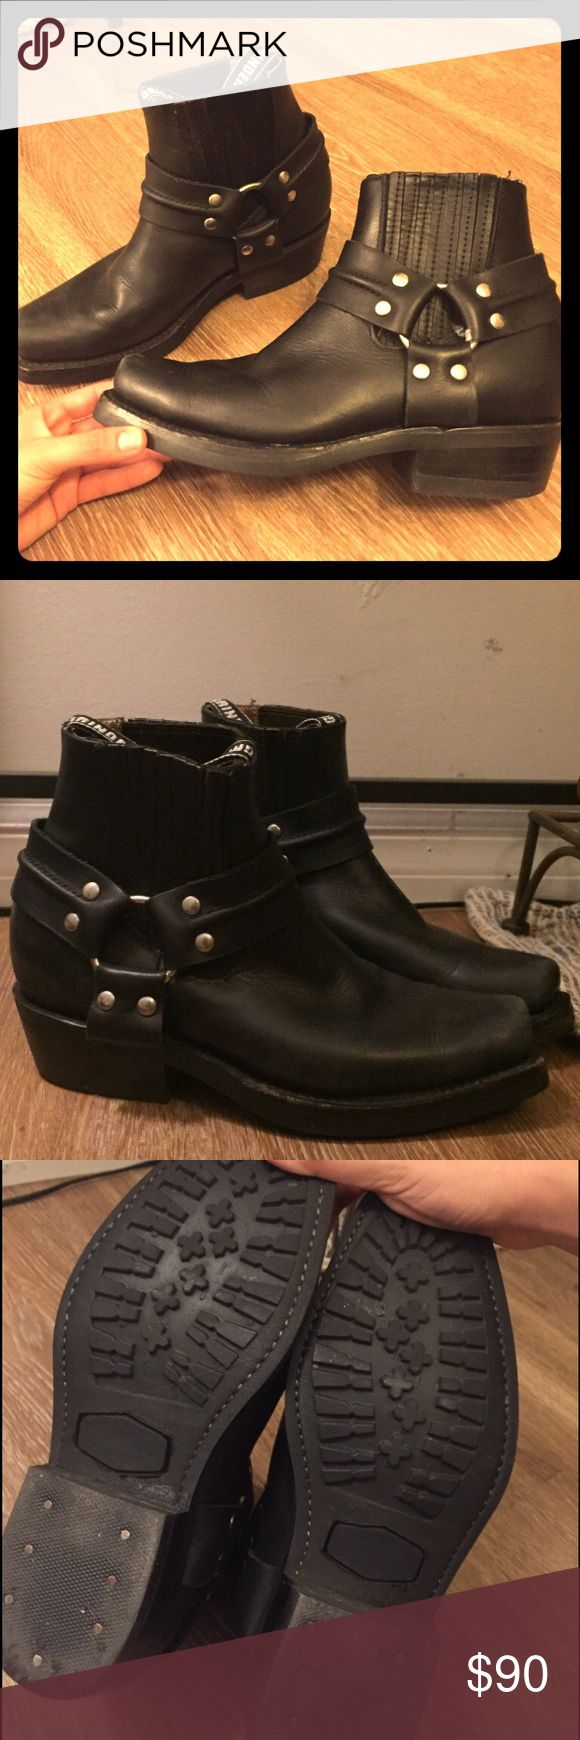 Men's Leather Biker Books UK Size 38 UK Brand Grinders. Excellent quality, only worn 5-6 times. Still smells like new leather!! These are Men's UK size 38, I'm Women's Size 8 and they fit me easily half a size too large (reason for selling) ... no huge scratches or crazy scuff marks or anything not photographed. ***keep in mind The scuff shown on the cover photo you can't see from the top view but see it intentionally detailed in that photo*** Grinders Shoes Cowboy & Western Boots